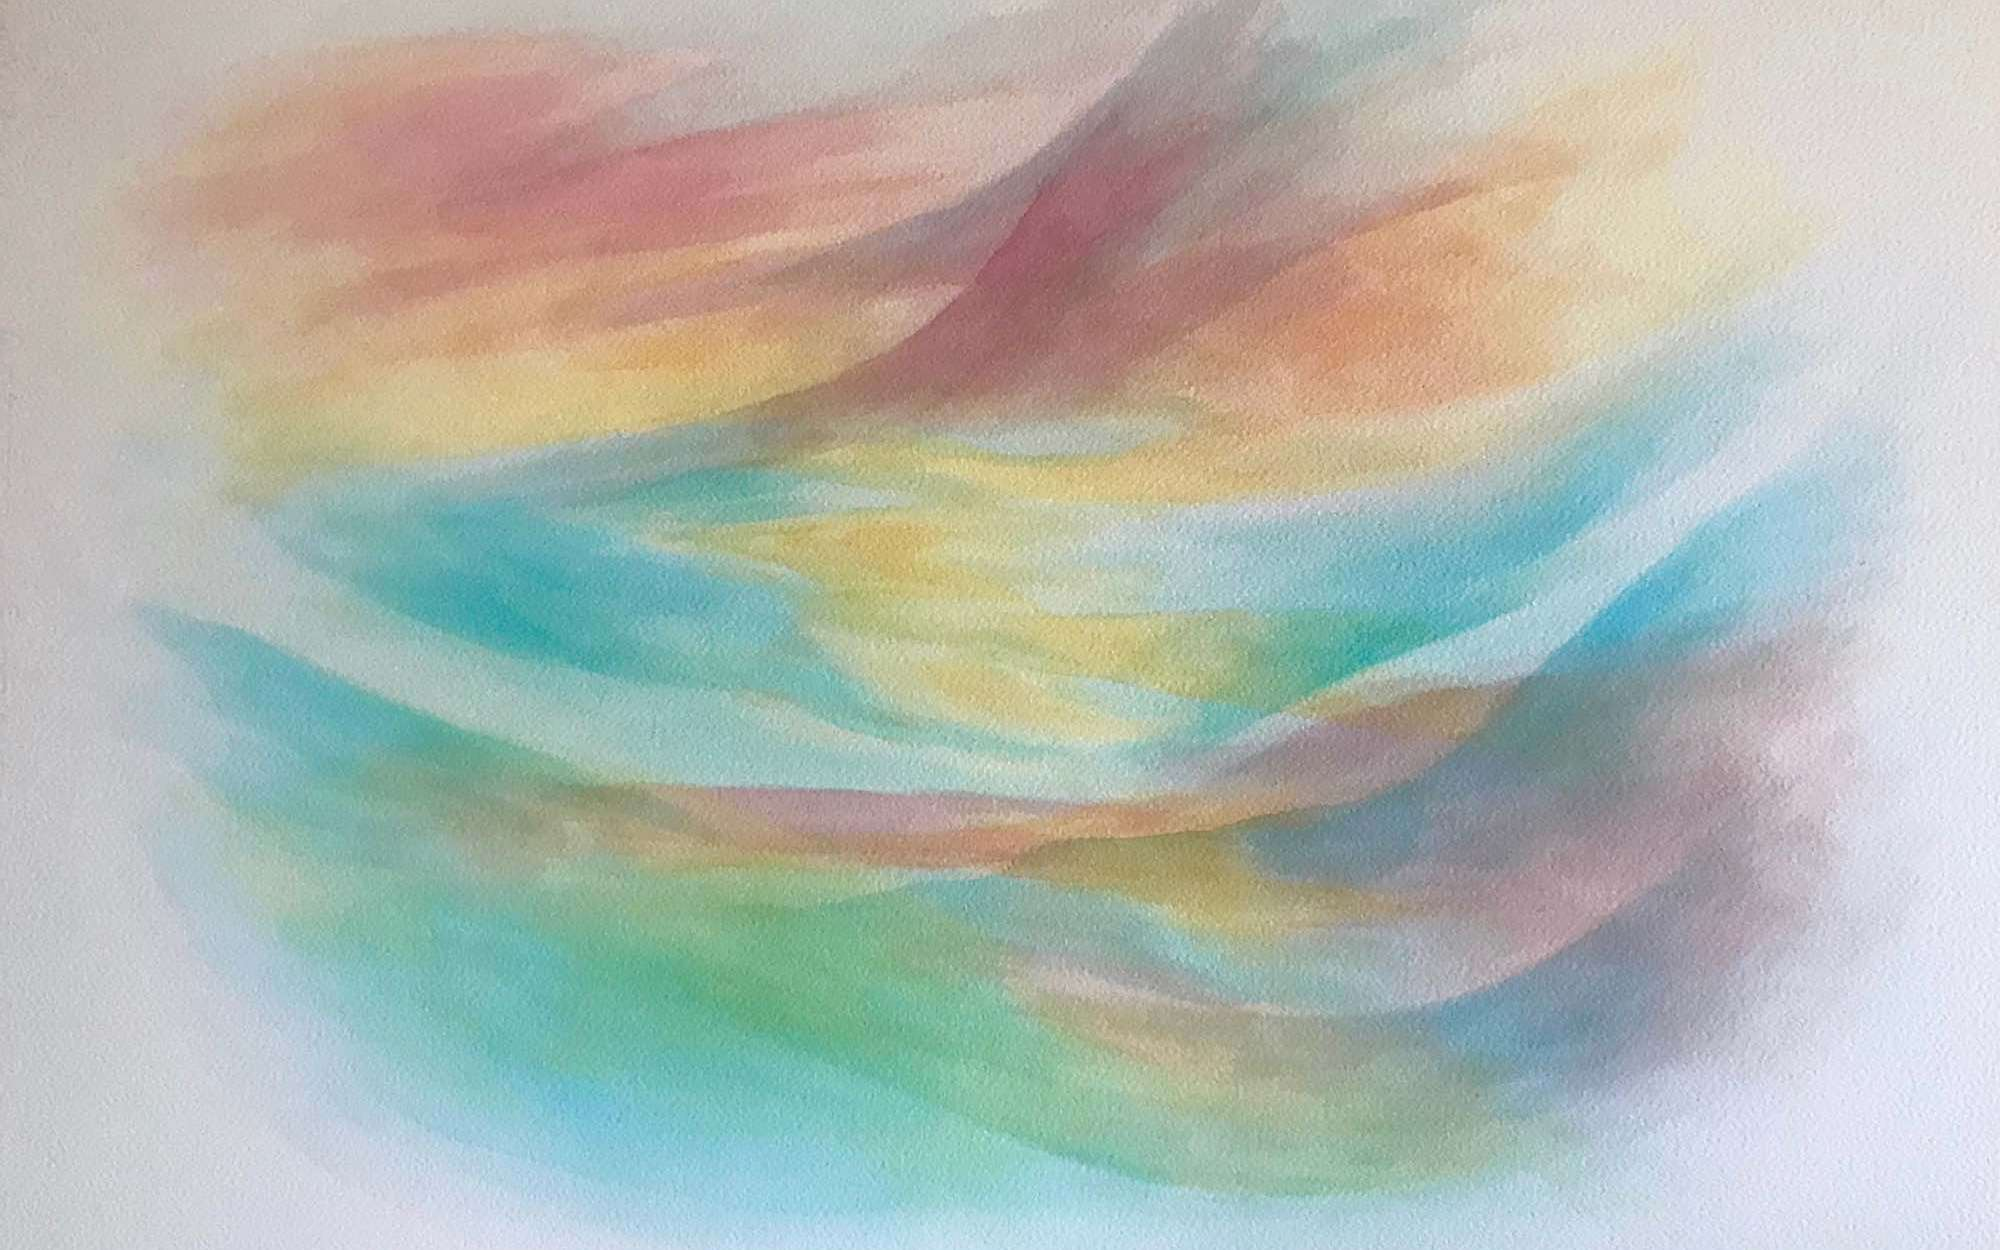 watercolour painting of imagination after a Rilke poem